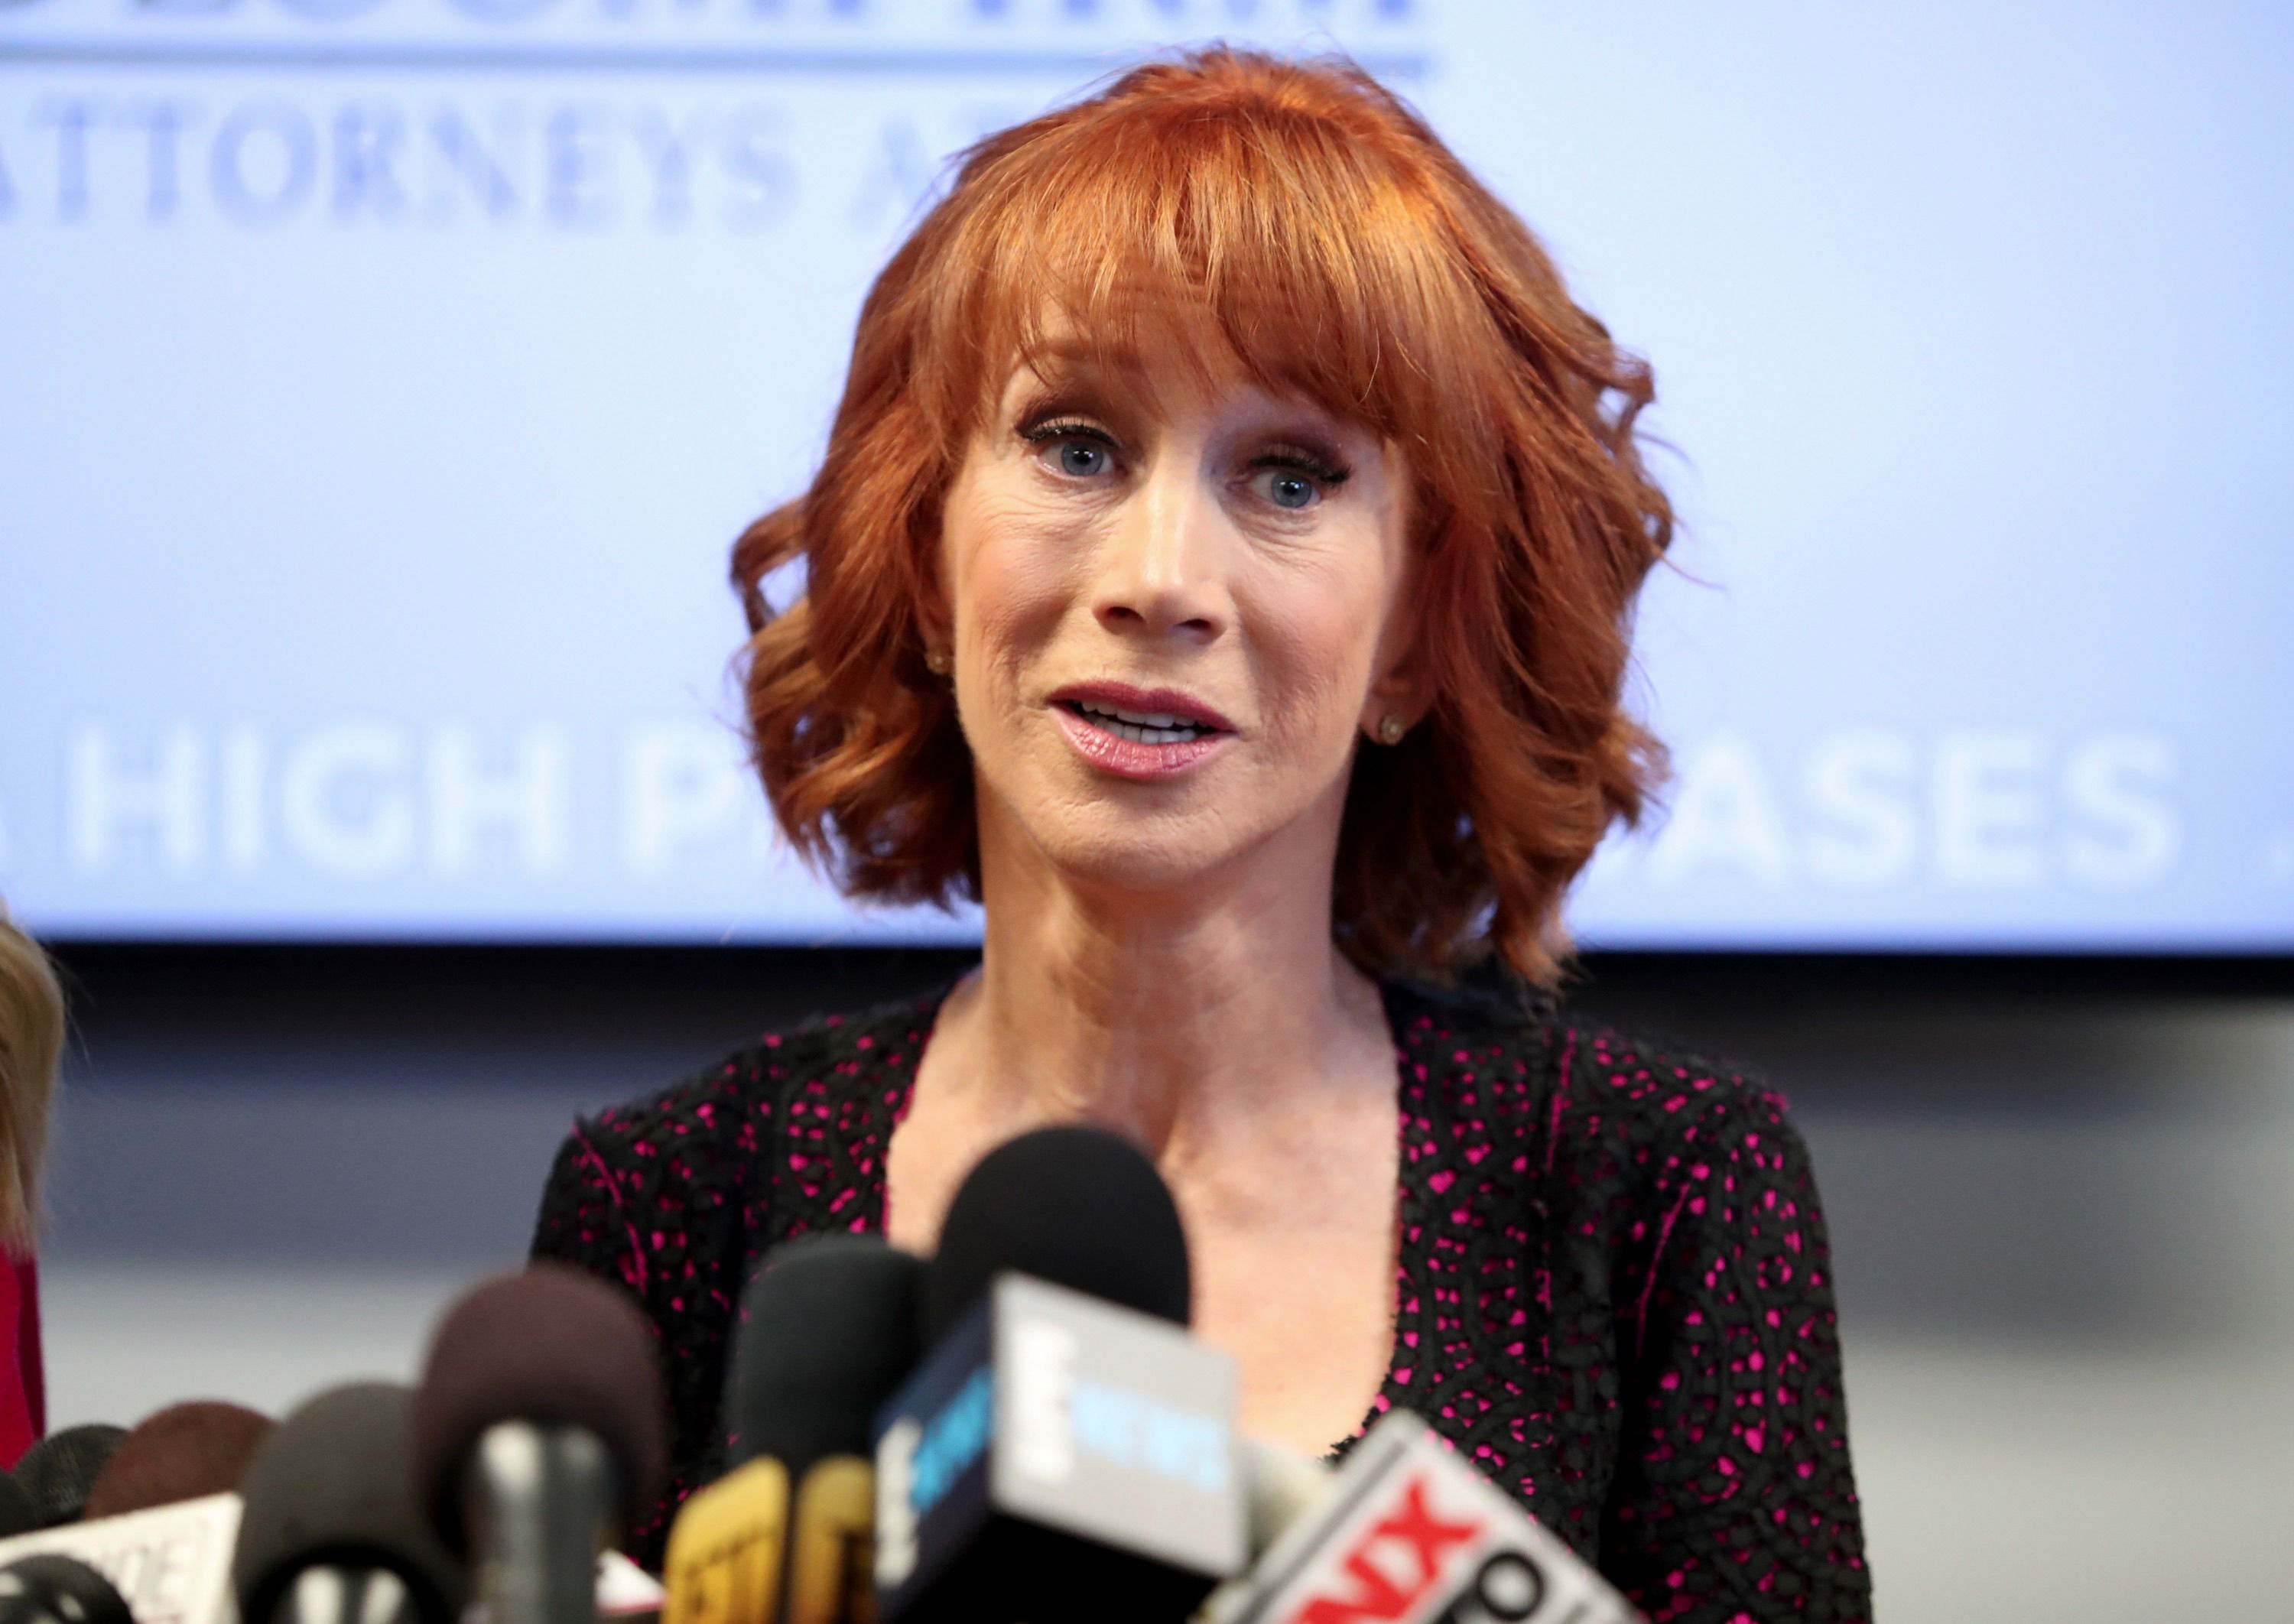 Andy Cohen Calls Kathy Griffin's Scathing Video a 'Bag of Bulls